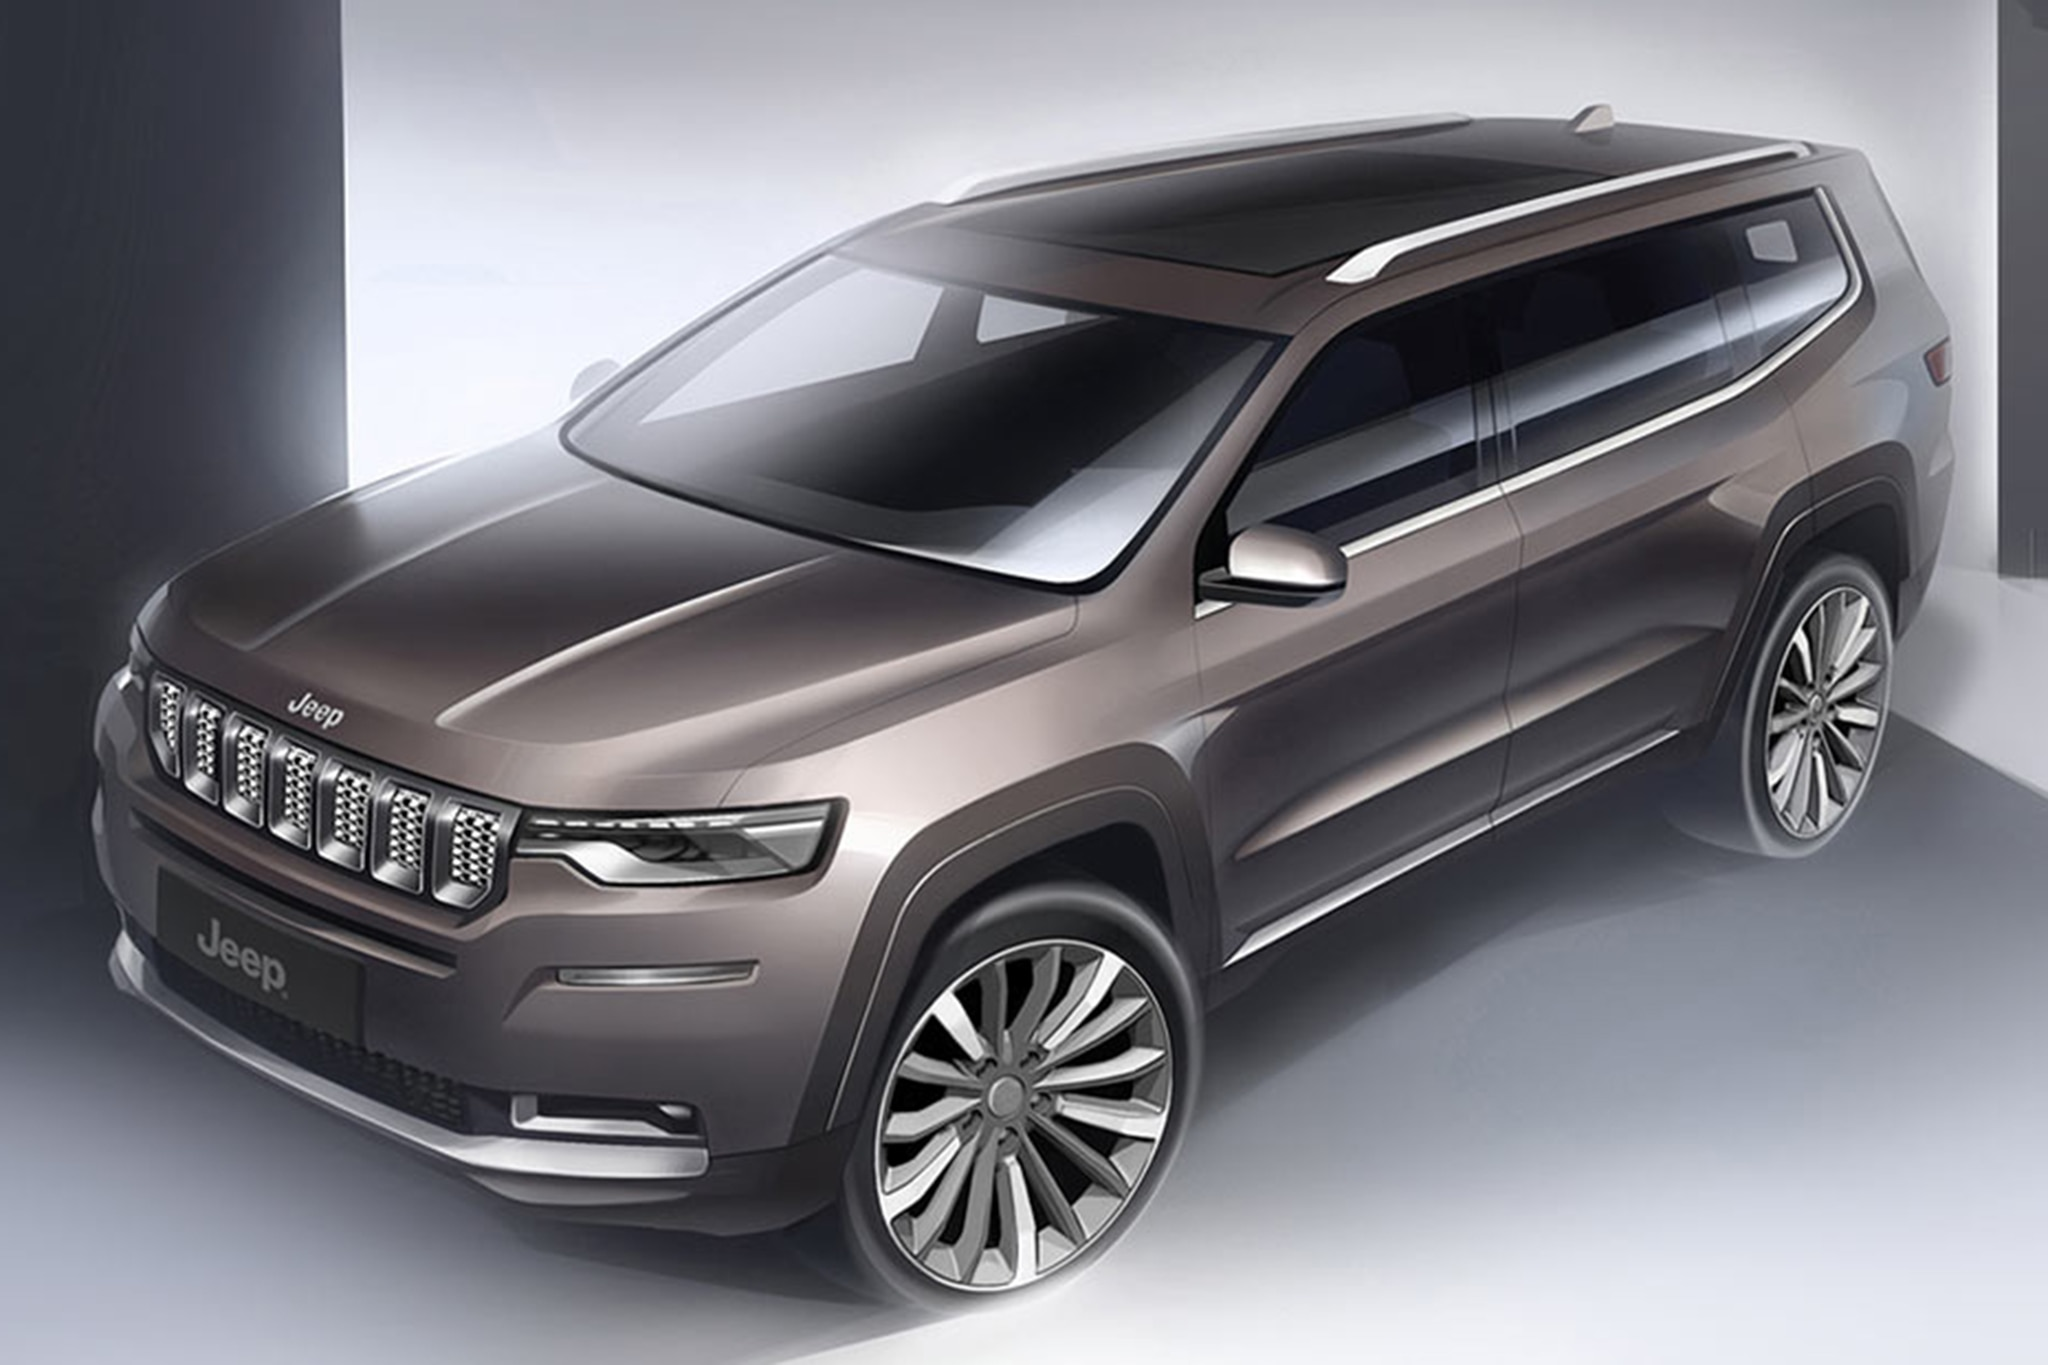 2018 Jeep Grand Commander Revealed for China | Automobile ...